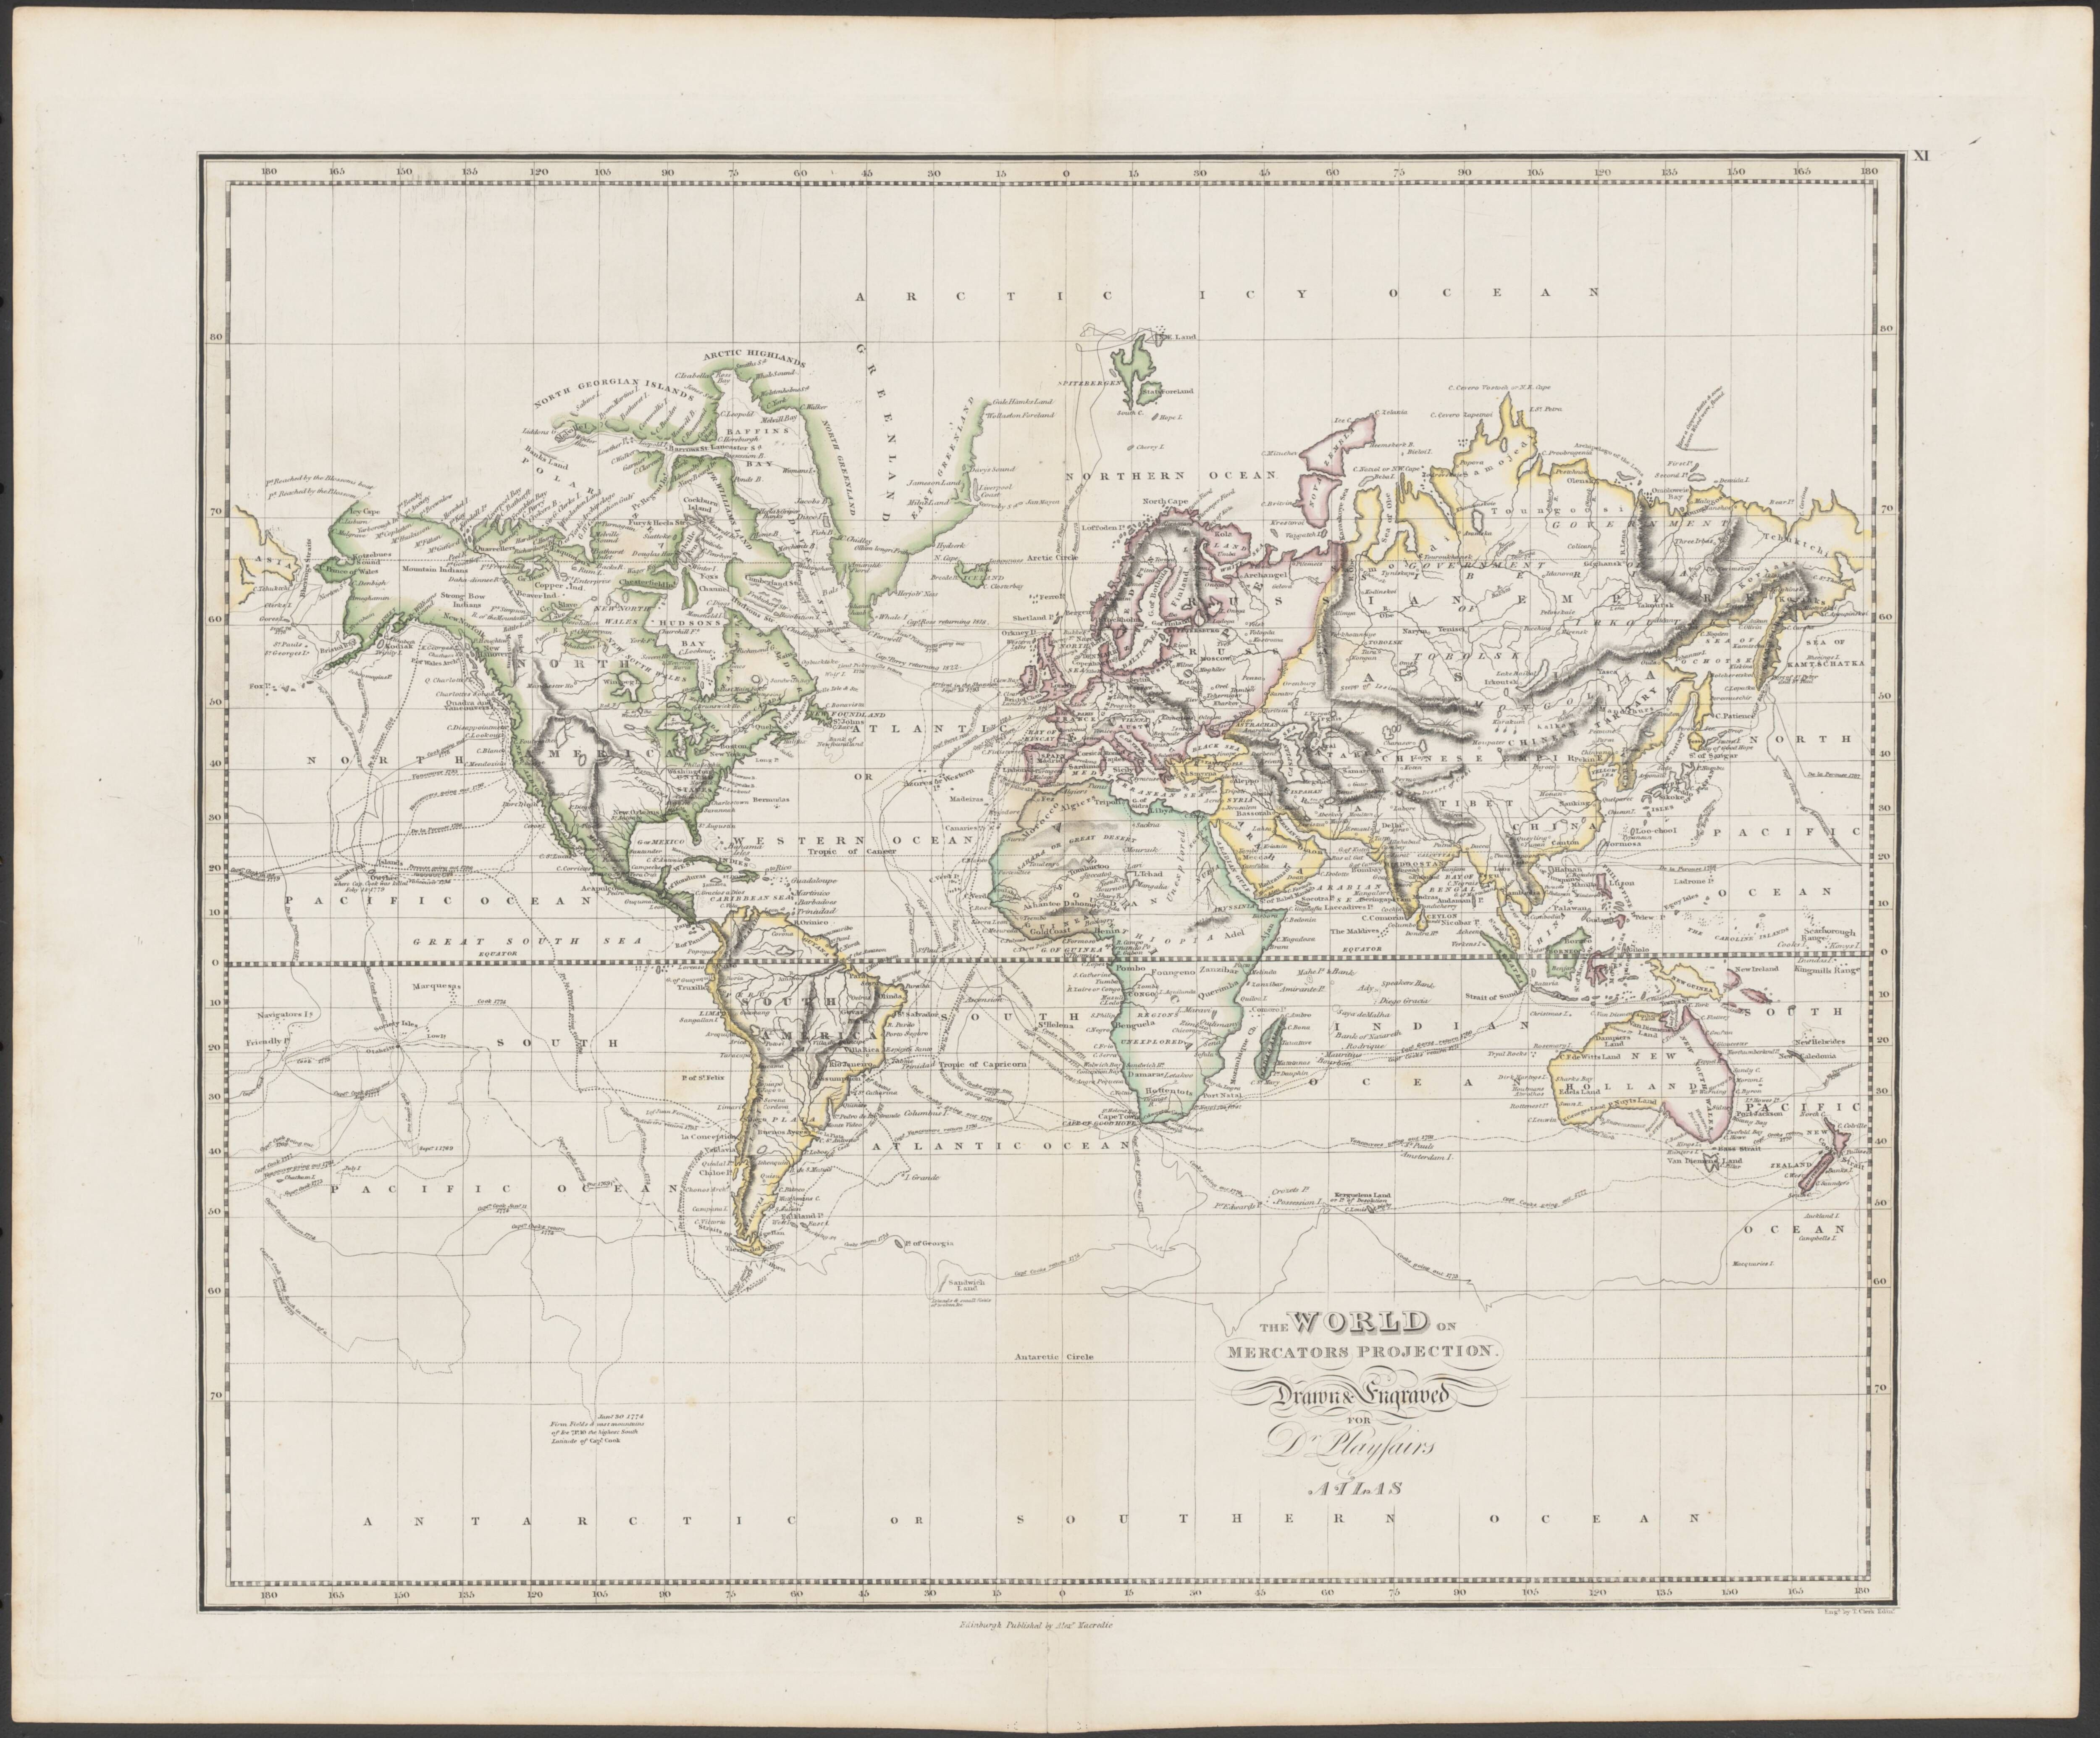 1814 world map showing the routes of cook vancouver gores ross 1814 world map showing the routes of cook vancouver gores ross phips gumiabroncs Image collections